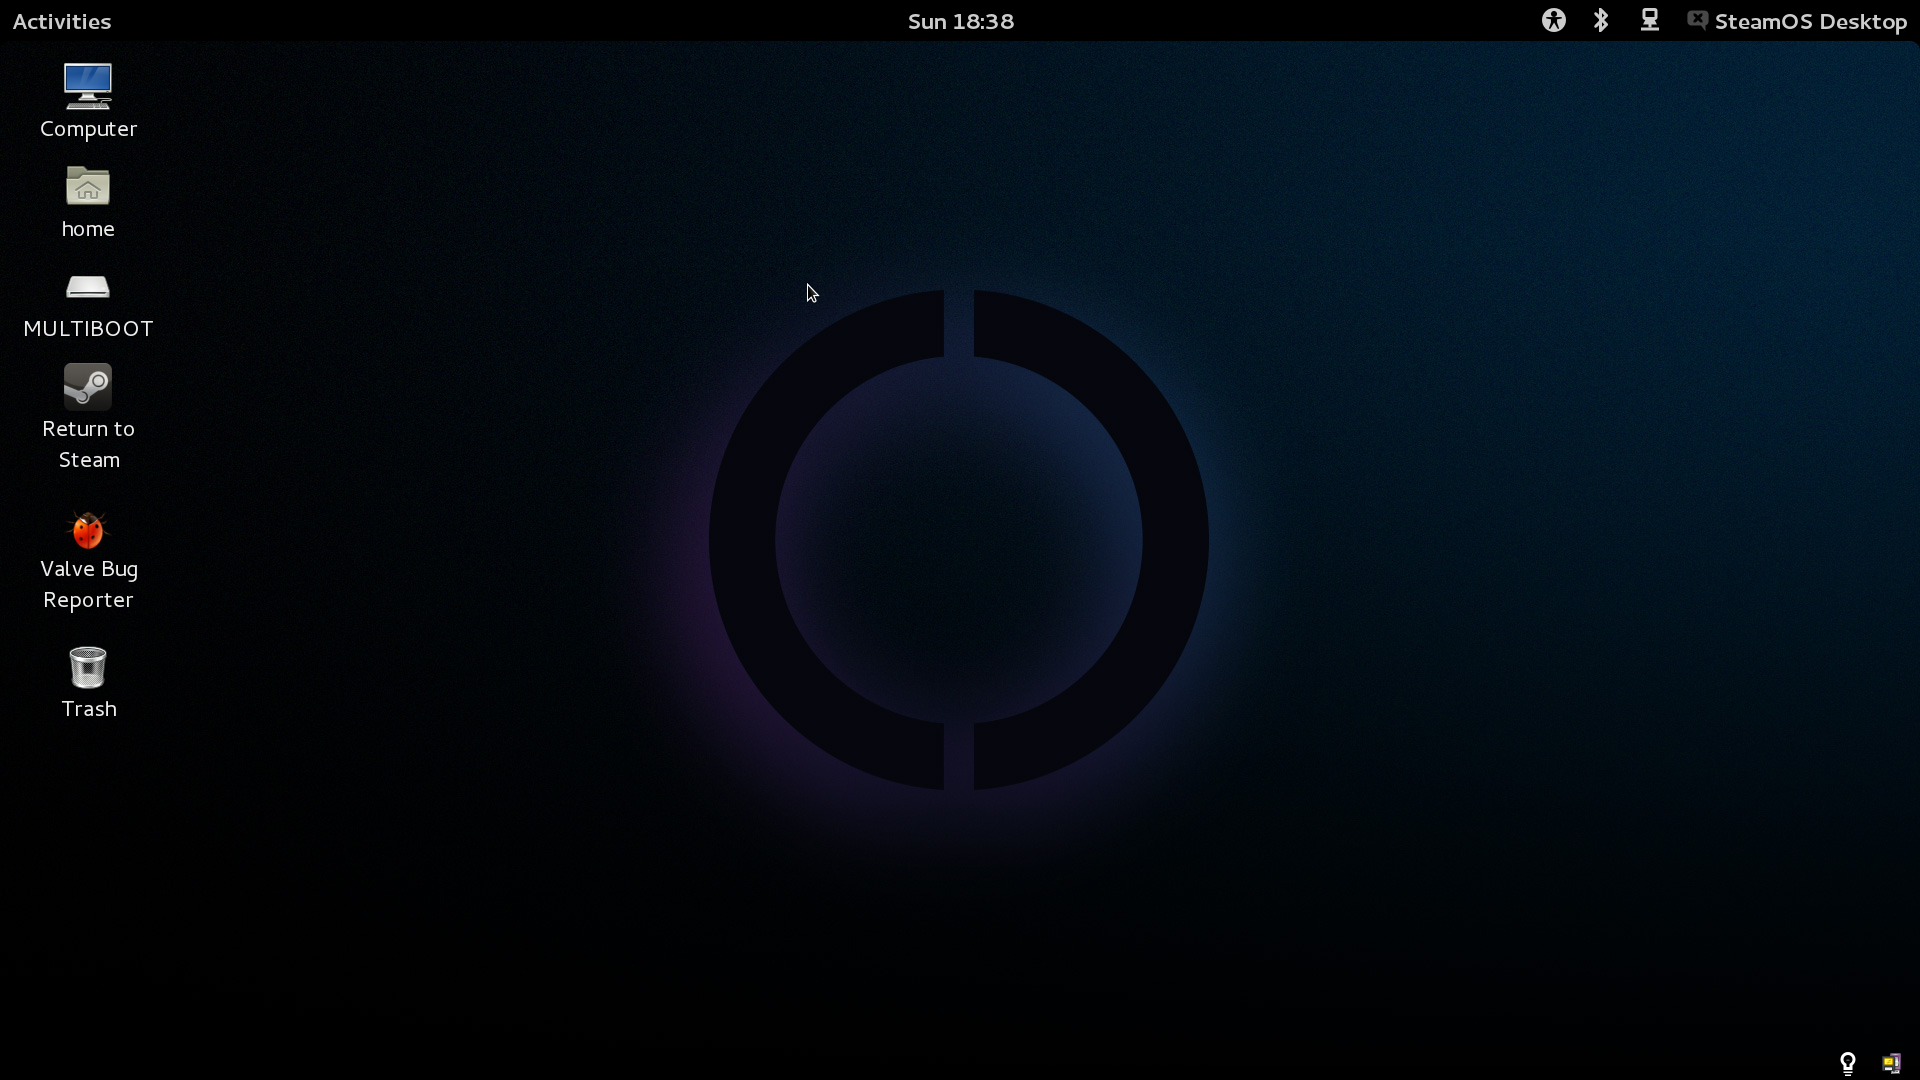 Steamos_gnome_desktop